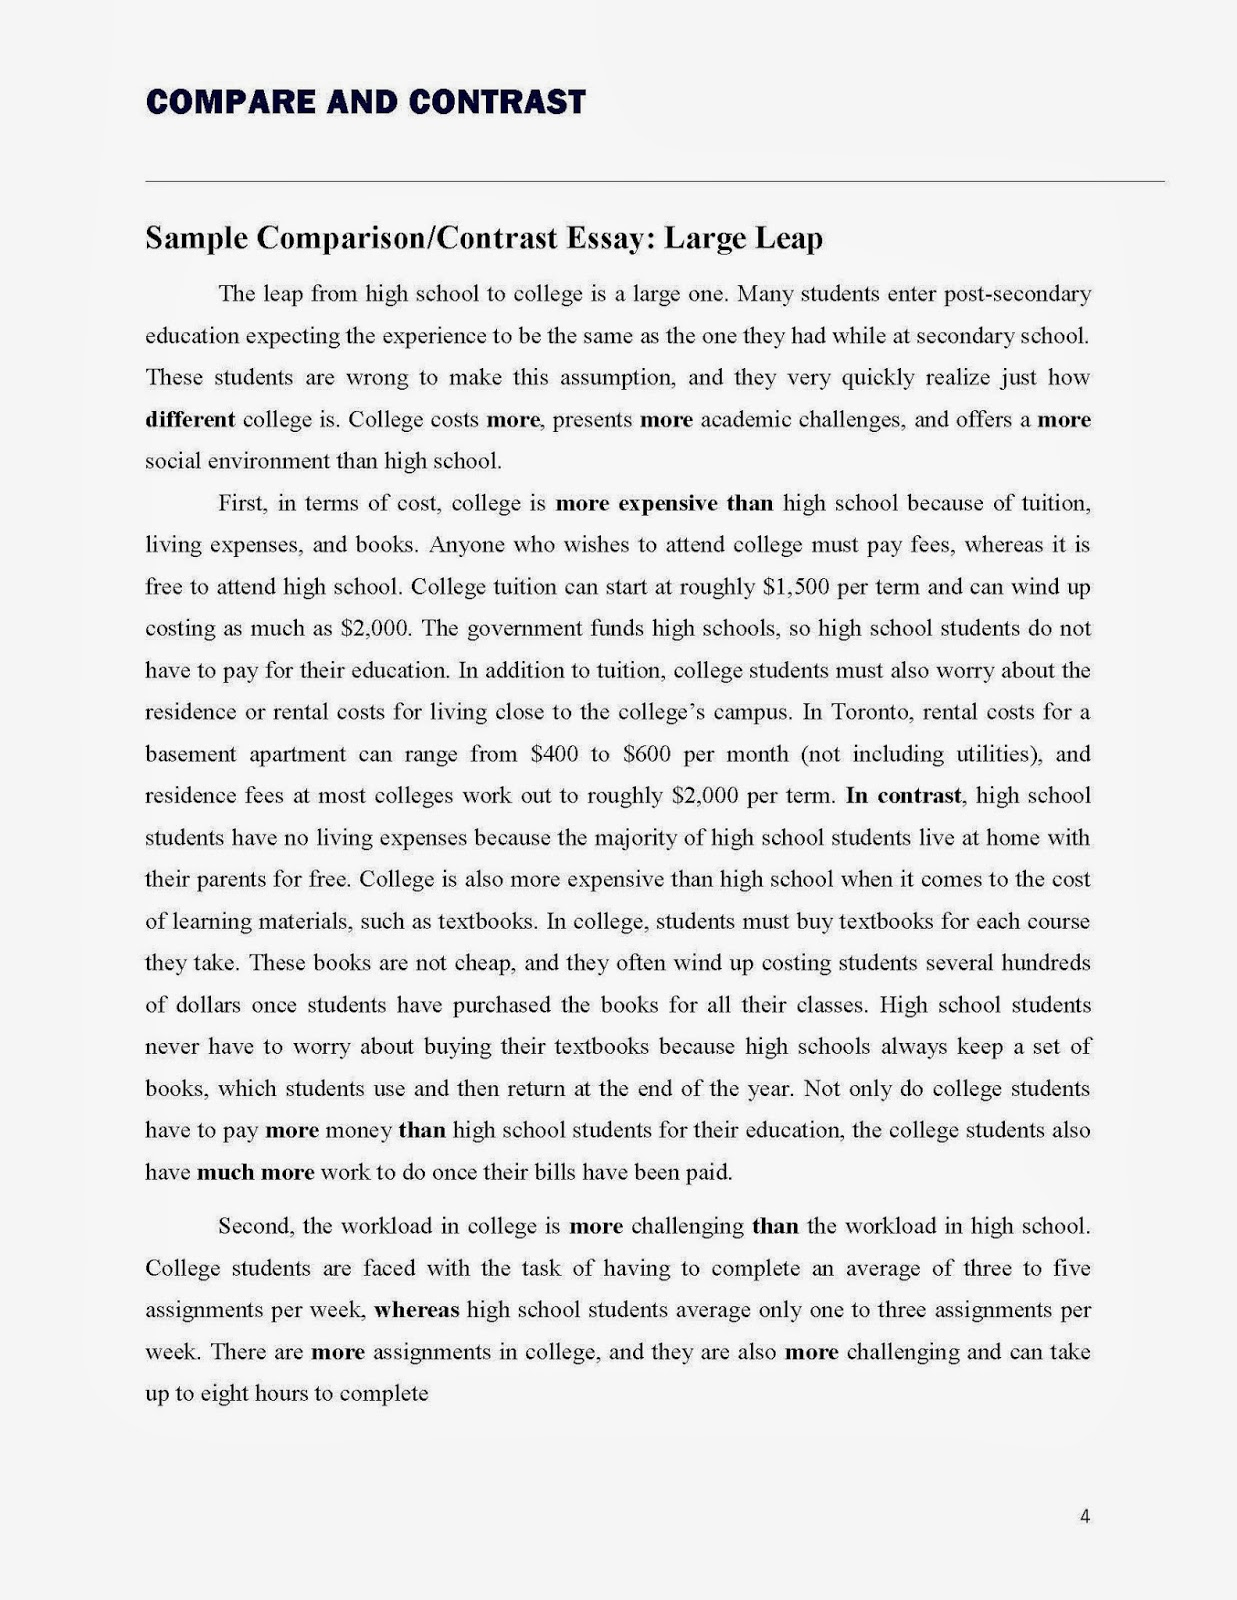 011 Compare And Contrast Essay Compareandcontrastessay Page 4h125 Frightening Outline Block Method Ideas High School Template For Middle Full